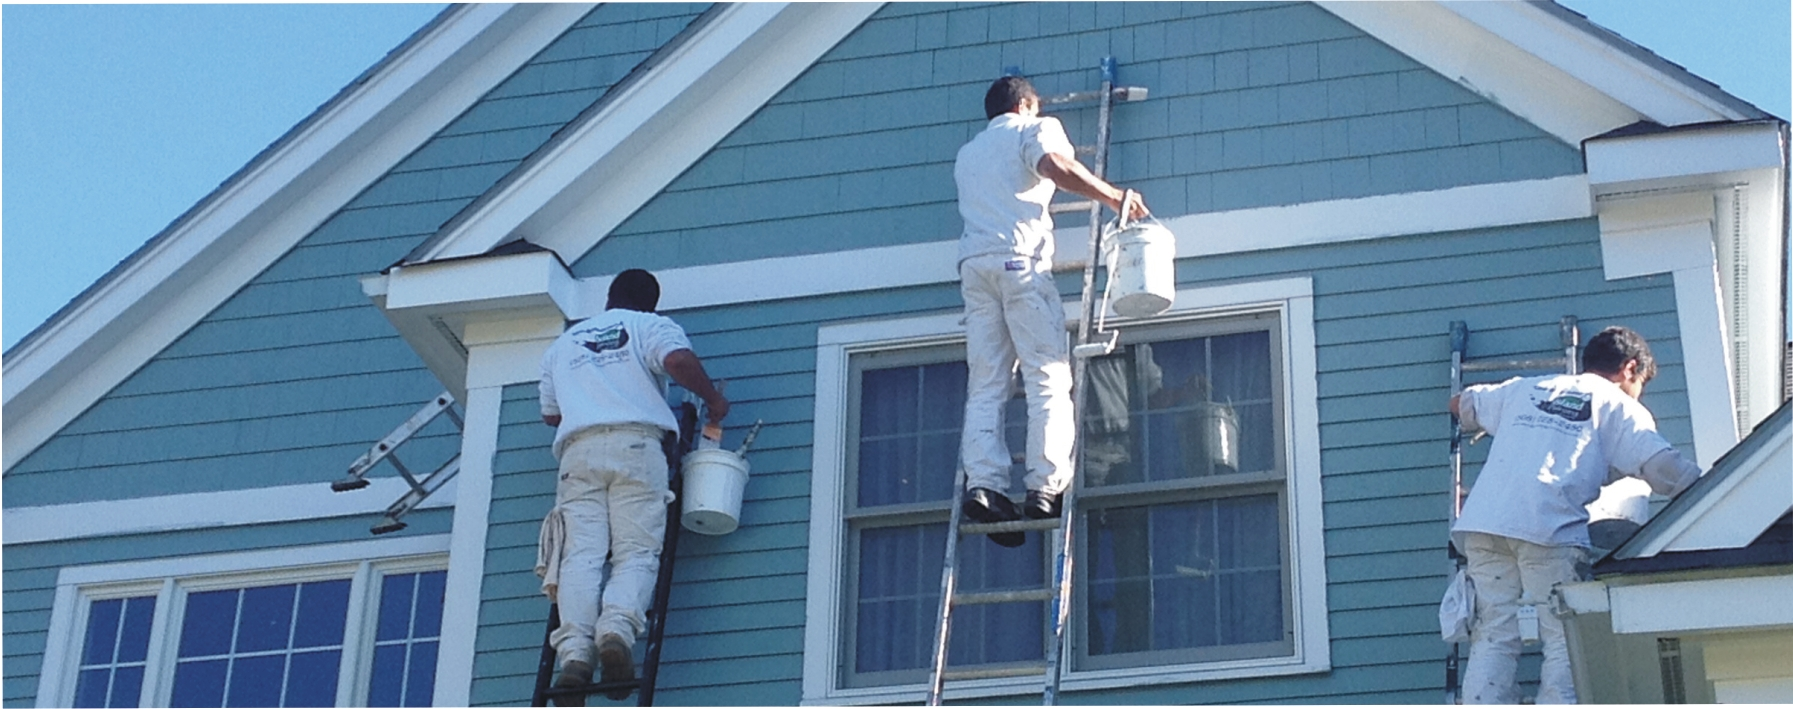 Exterior-Painting-Contractors-Burlington-VT.jpg